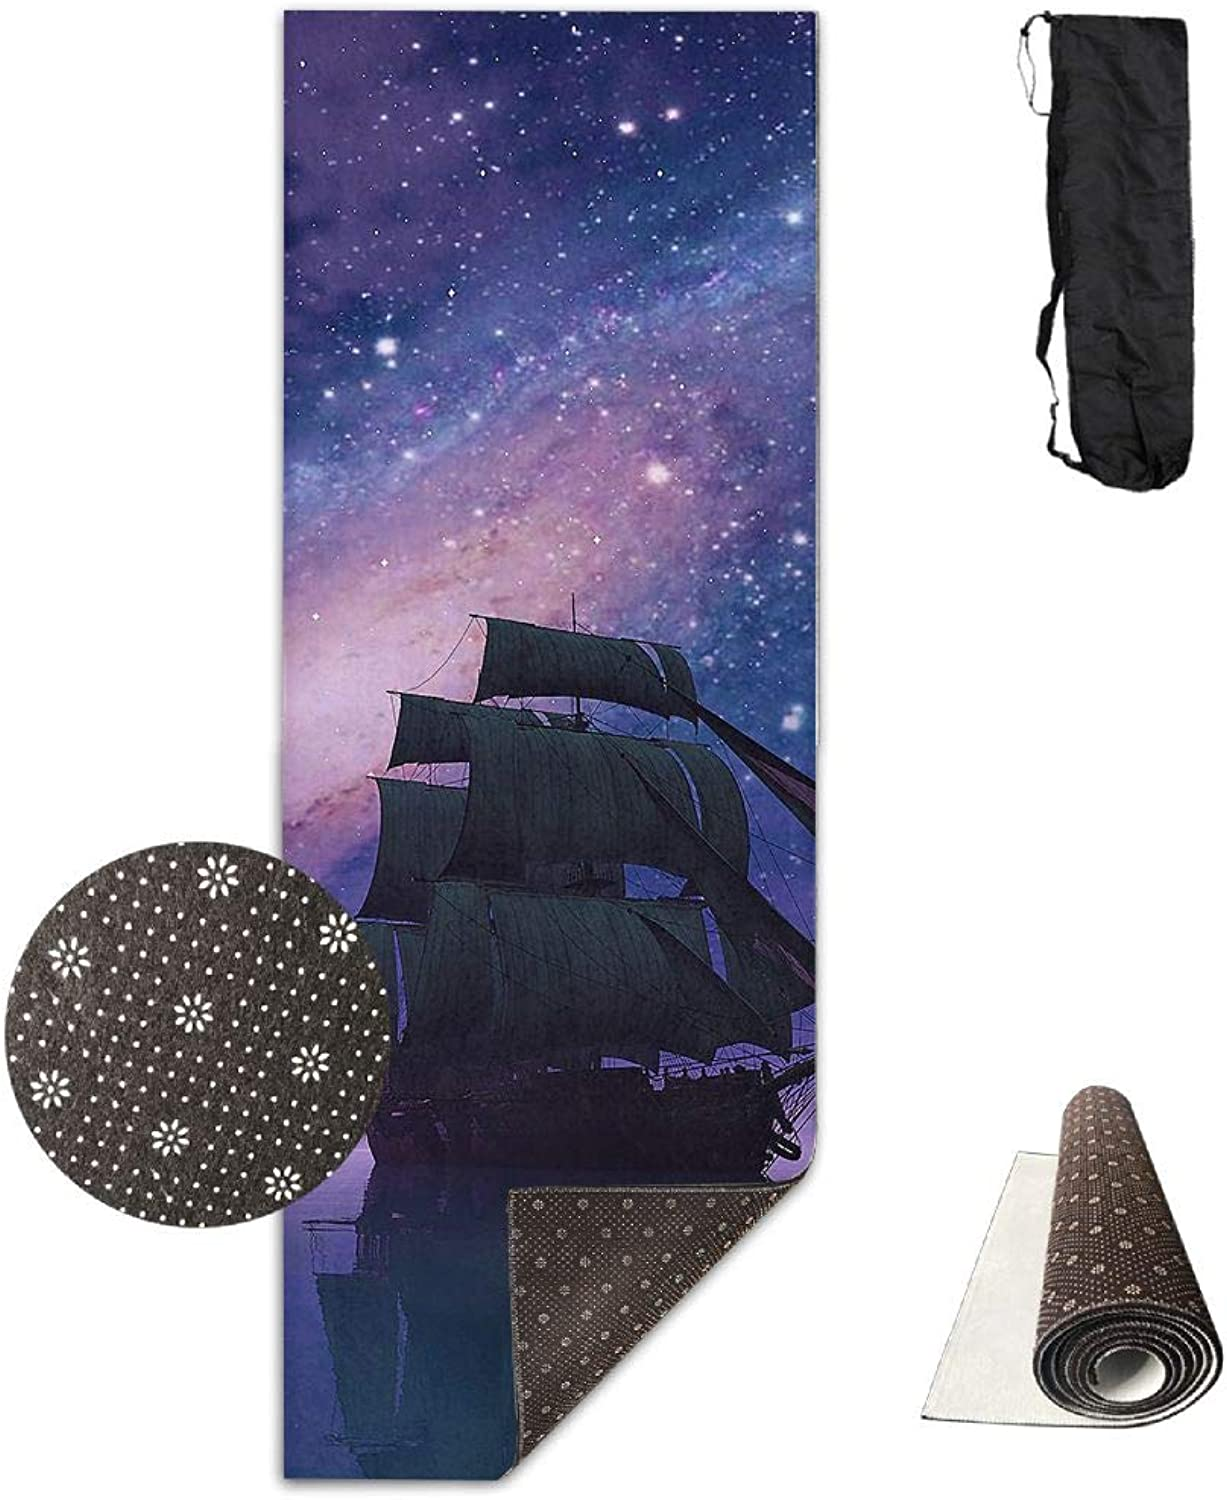 Yoga Mat Non Slip 24  X 71  Exercise Mats Space Galaxy colorful Magnificent Premium Fitness Pilates Carrying Strap